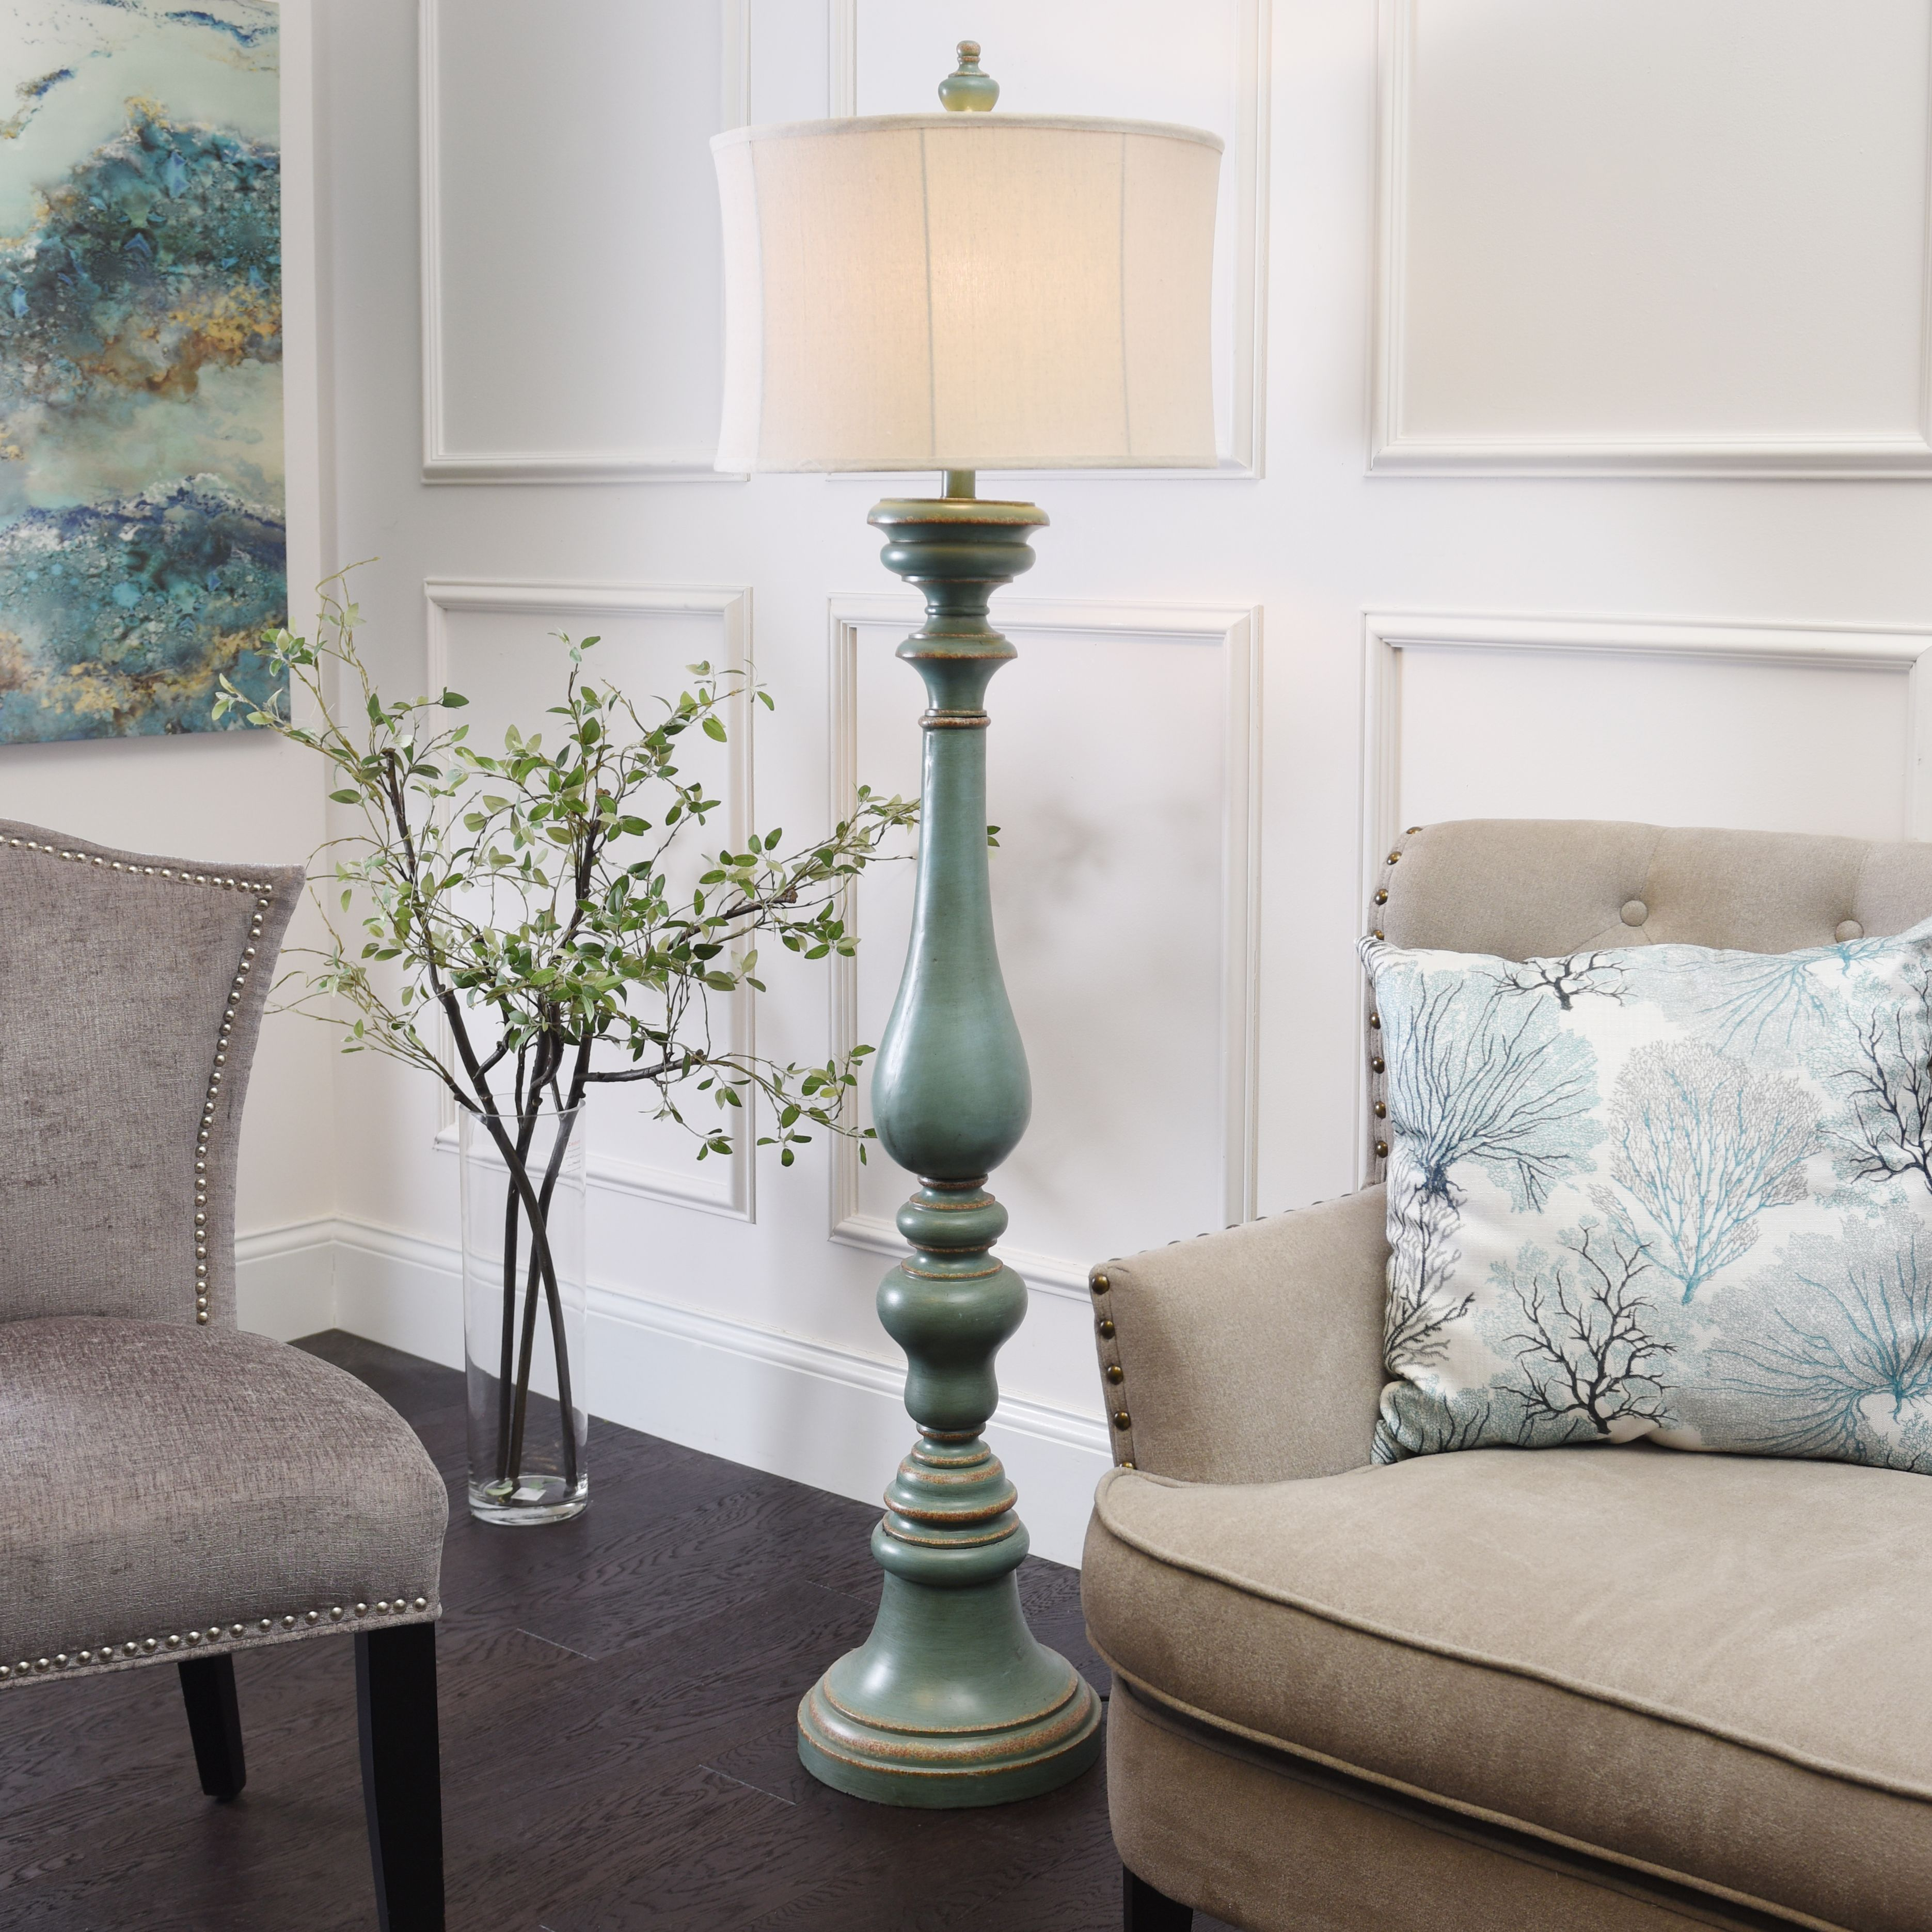 Burks Turquoise Floor Lamp In 2019 Diy Floor Lamp Floor